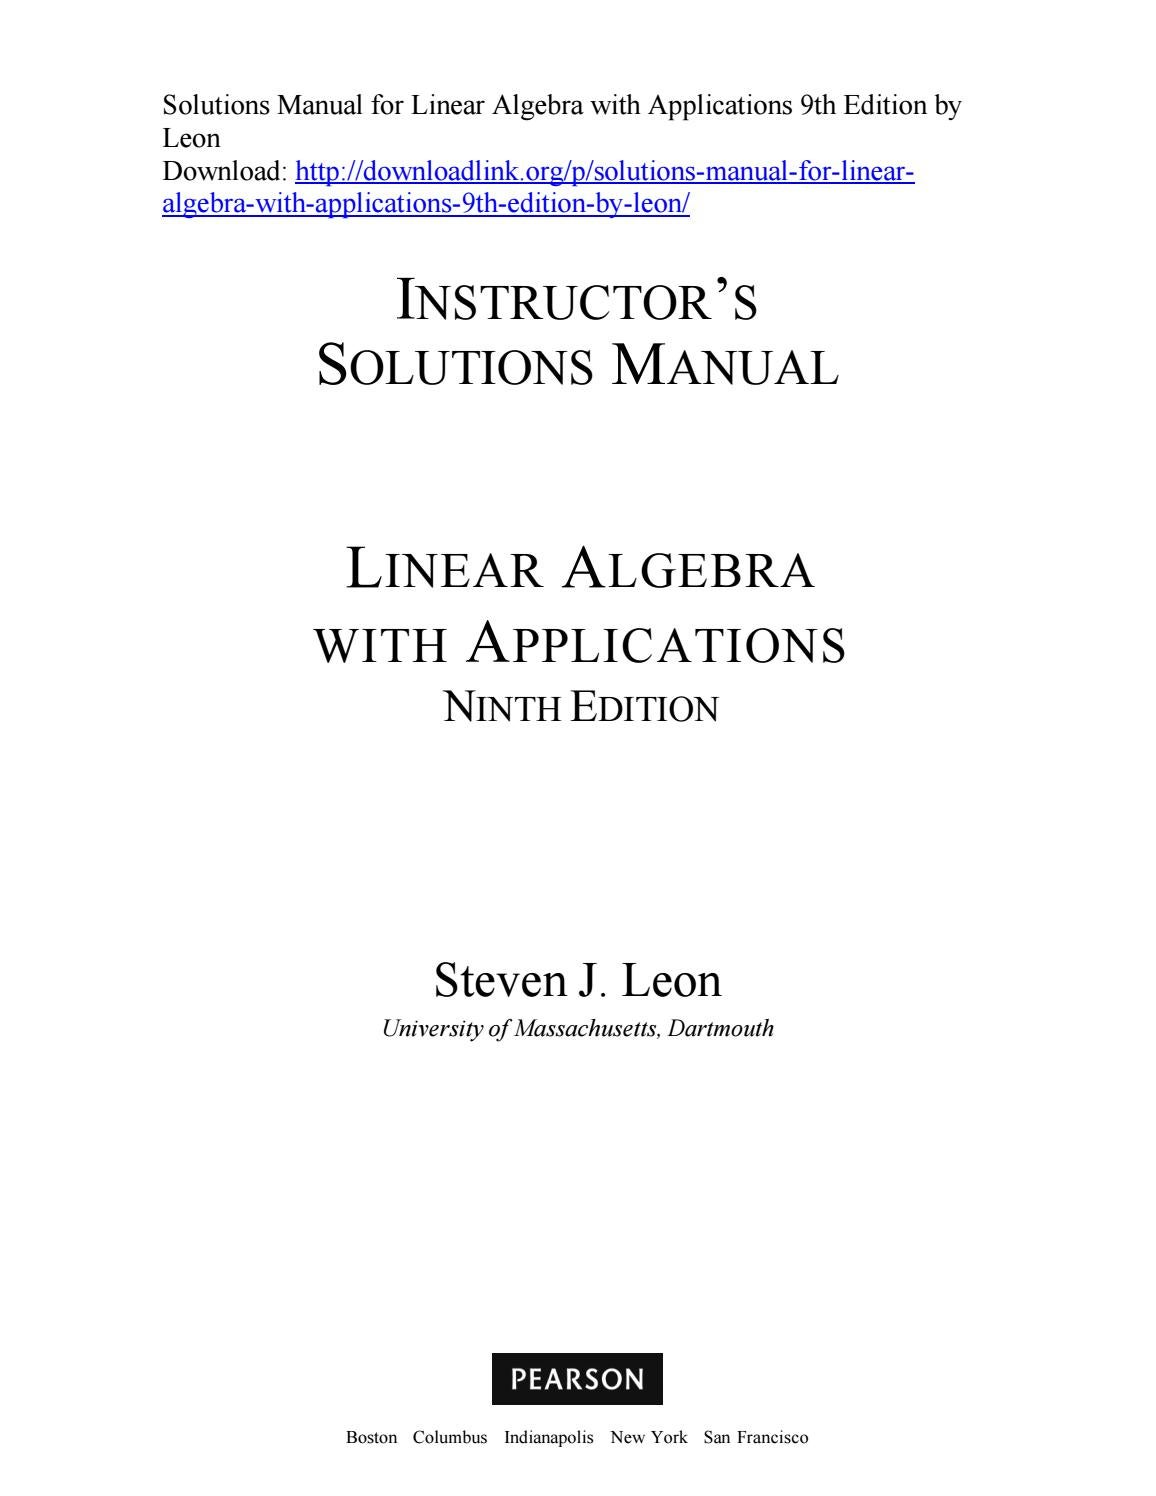 Solutions Manual for Linear Algebra with Applications 9th Edition by Leon  by ys046 - issuu